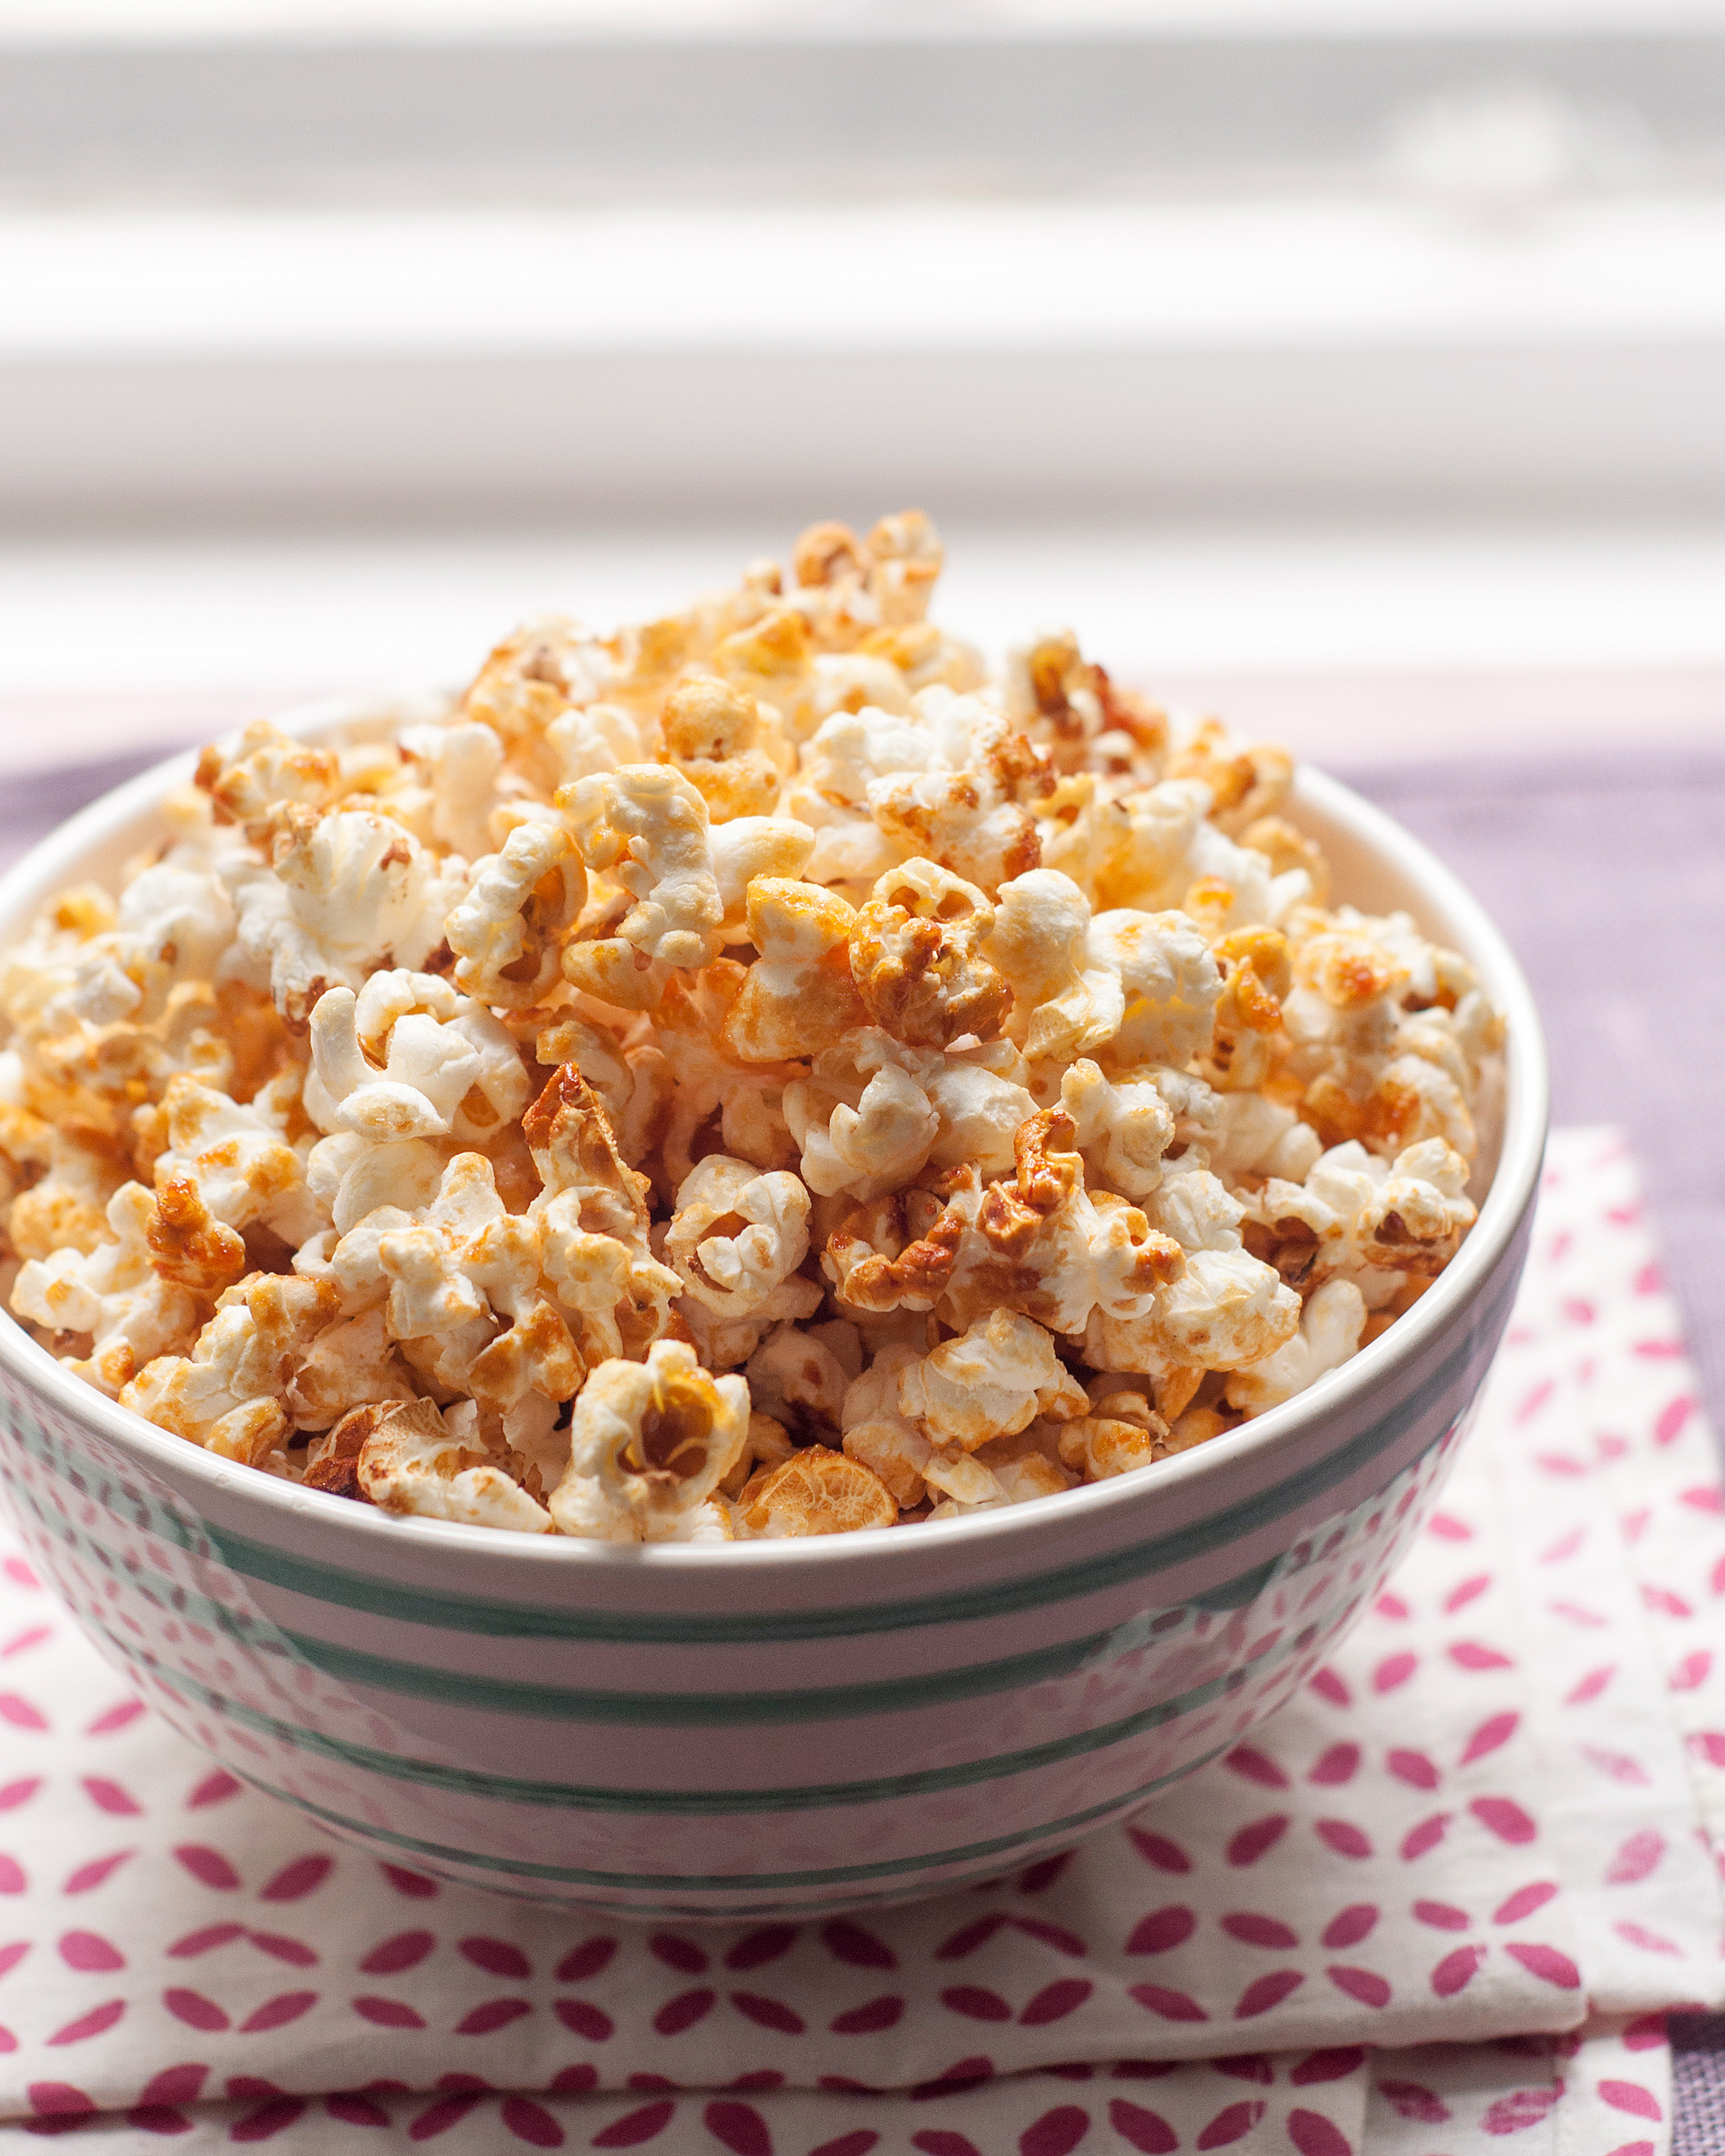 How To Make Kettle Corn at Home | Kitchn